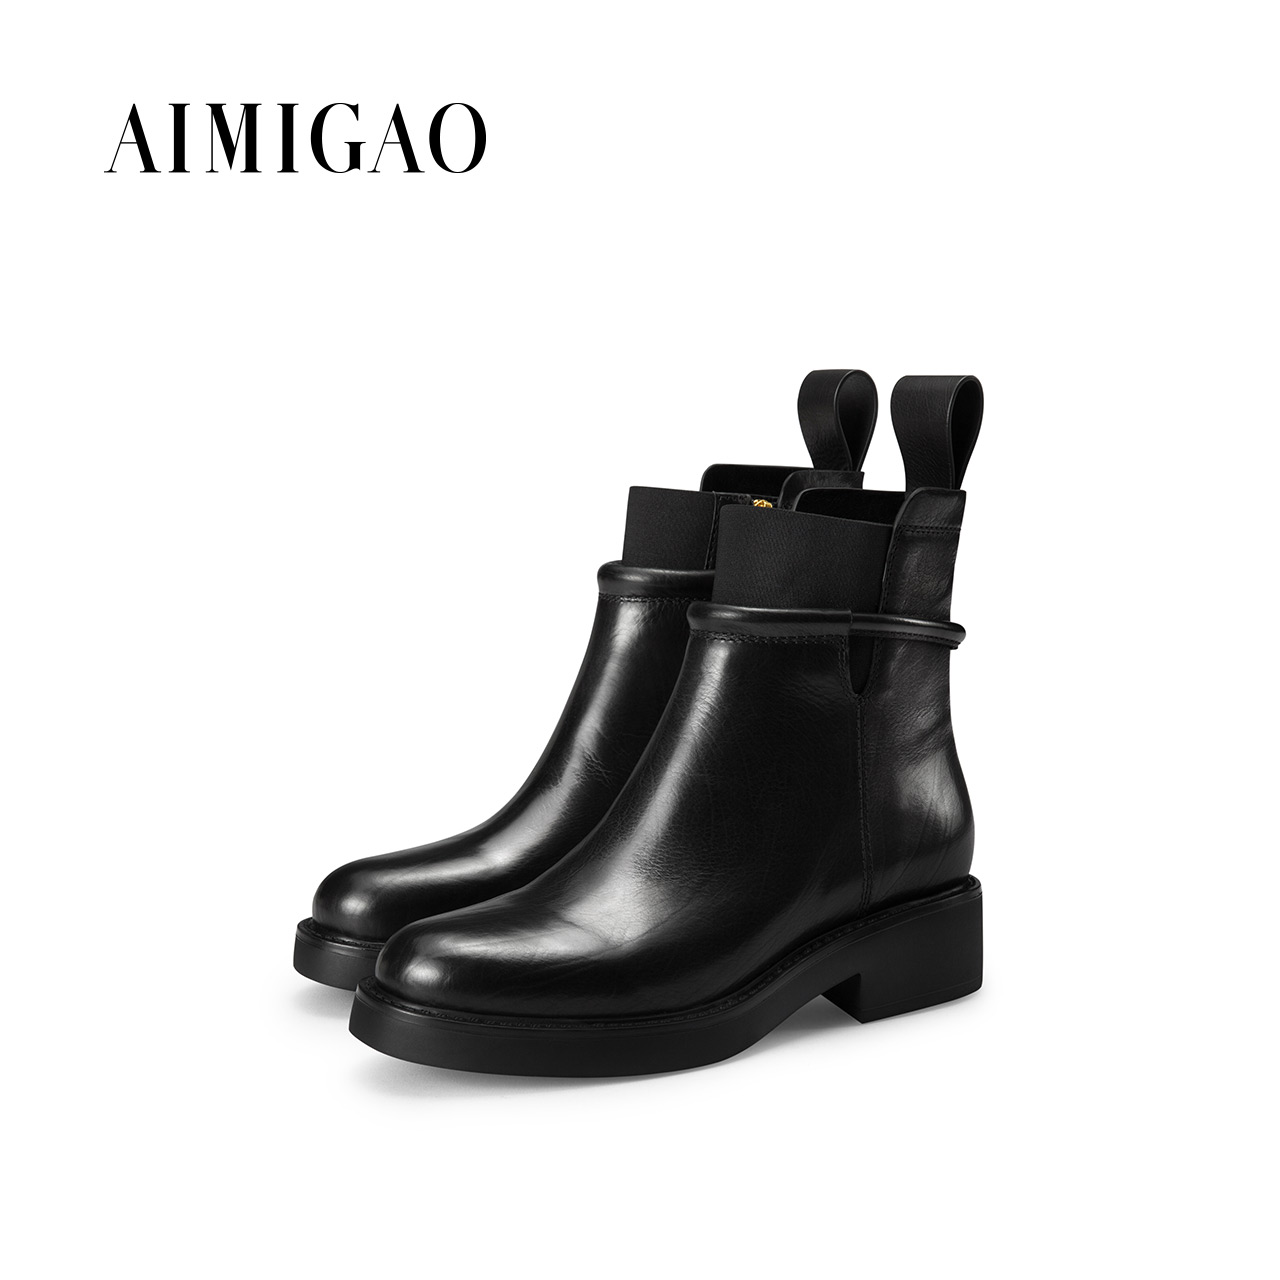 где купить AIMIGAO genuine leather platform women boots 2017 winter new round toe square heel Martin boots female side zipper ankle boots по лучшей цене